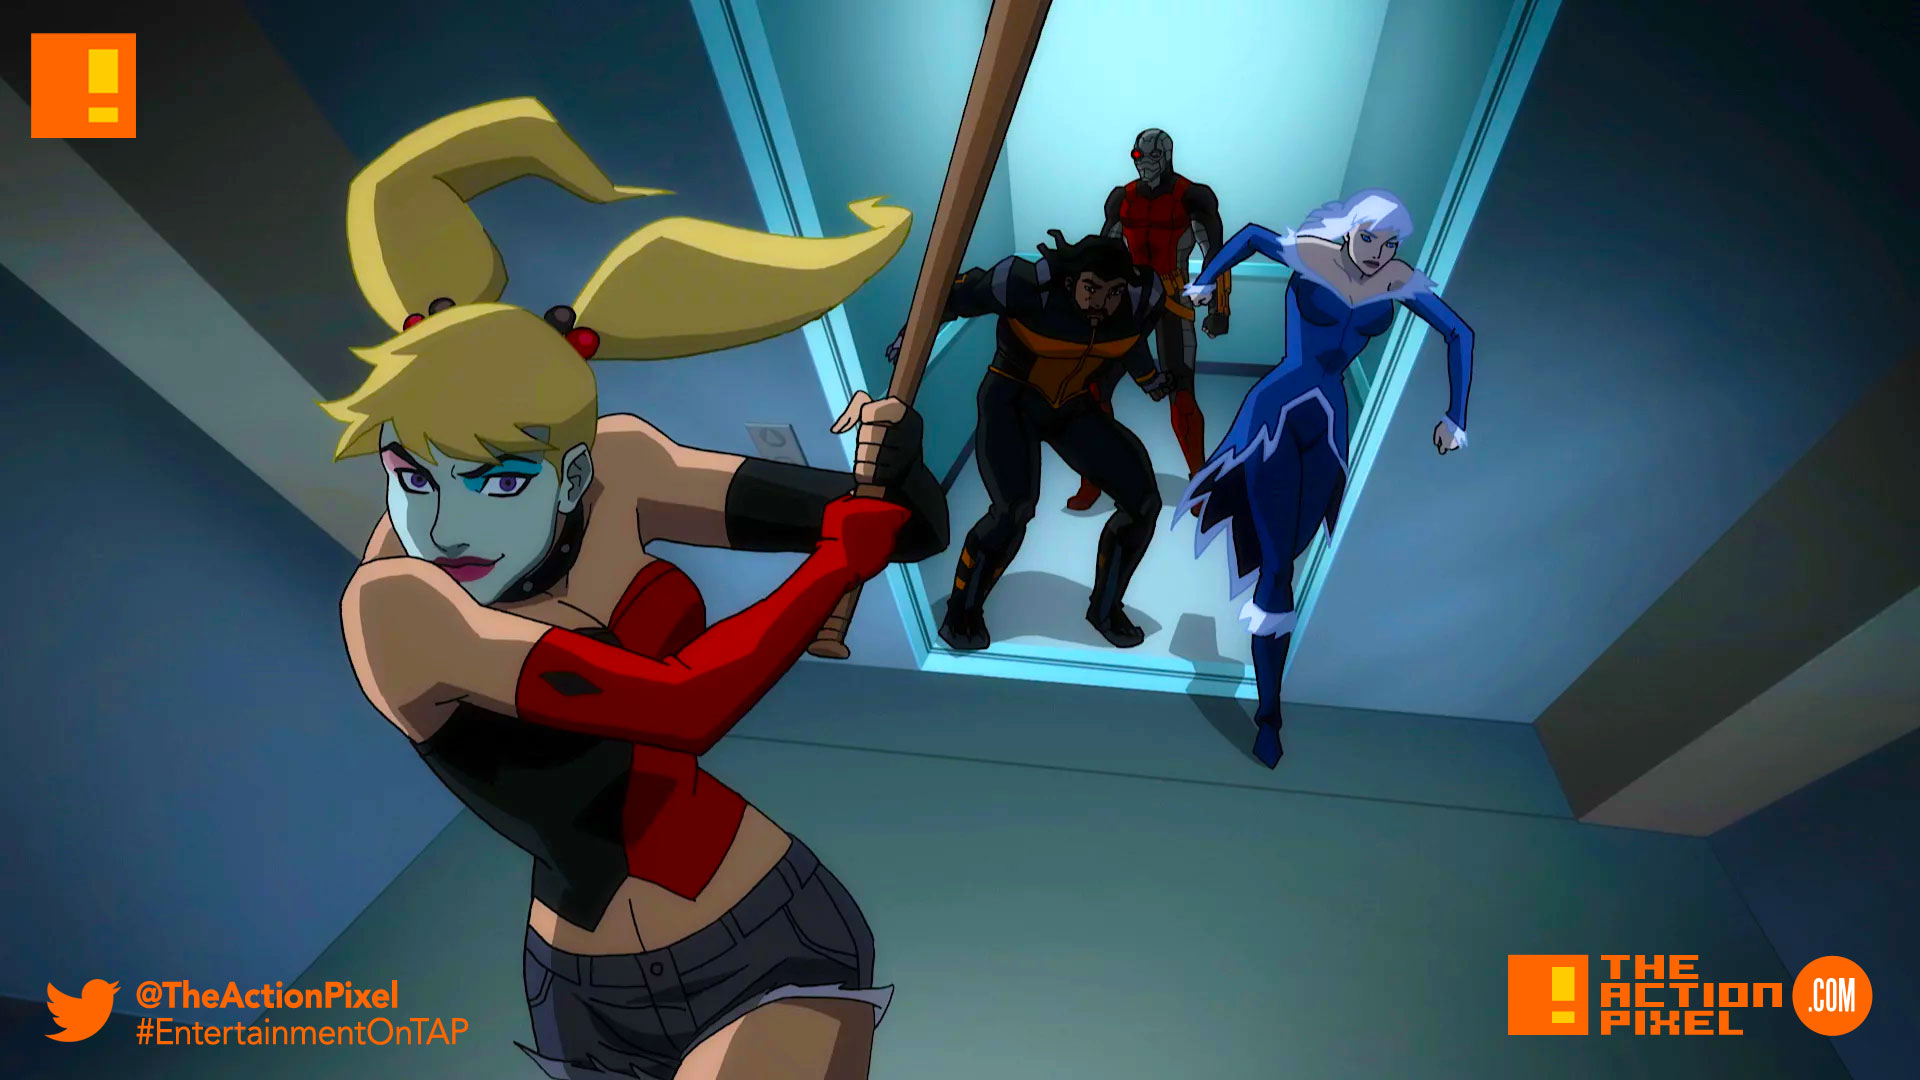 hell to pay, suicide squad, suicide squad: hell to pay, dc comics, warner bros. animation, warner bros., deadshot, harley quinn, copperhead, the action pixel, entertainment on tap, suicide squad animation,rooftop